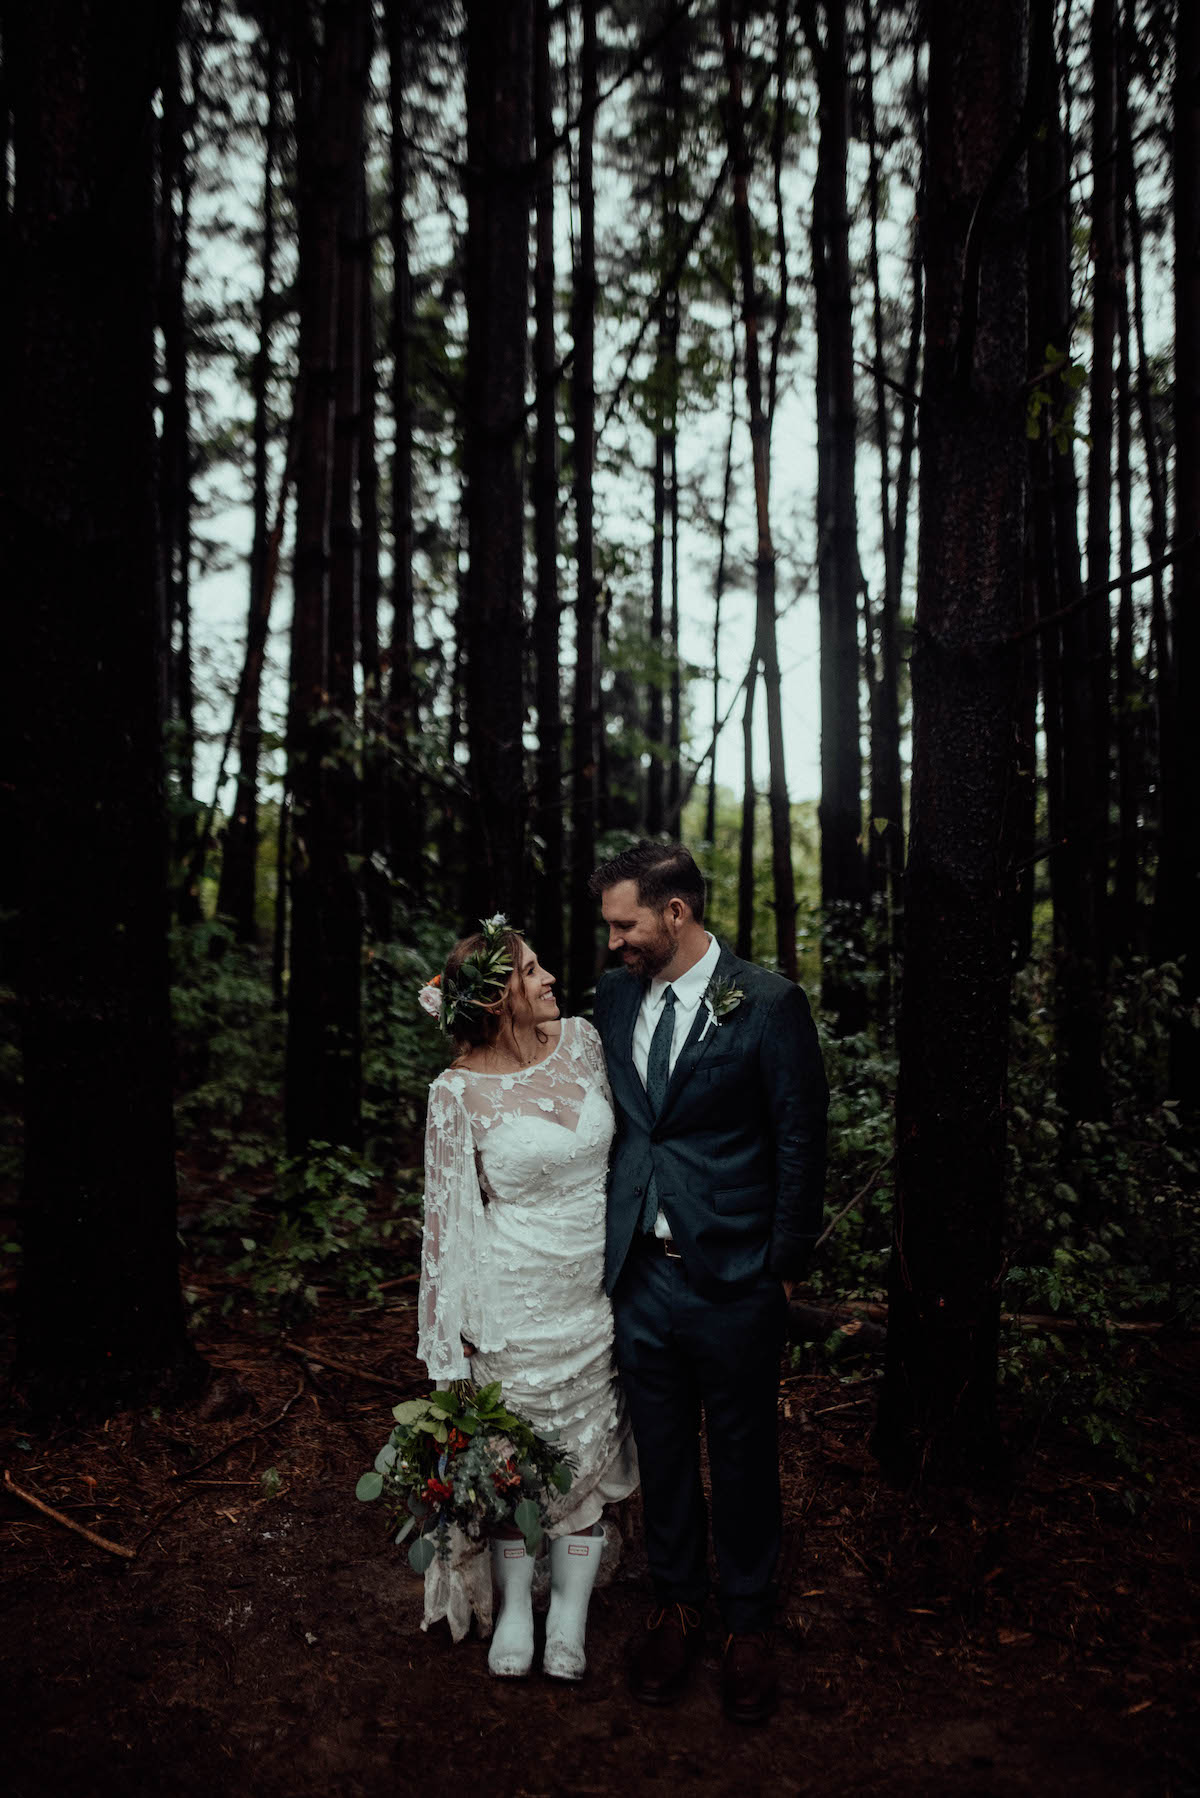 Bride wearing rain boots with her lace wedding dress